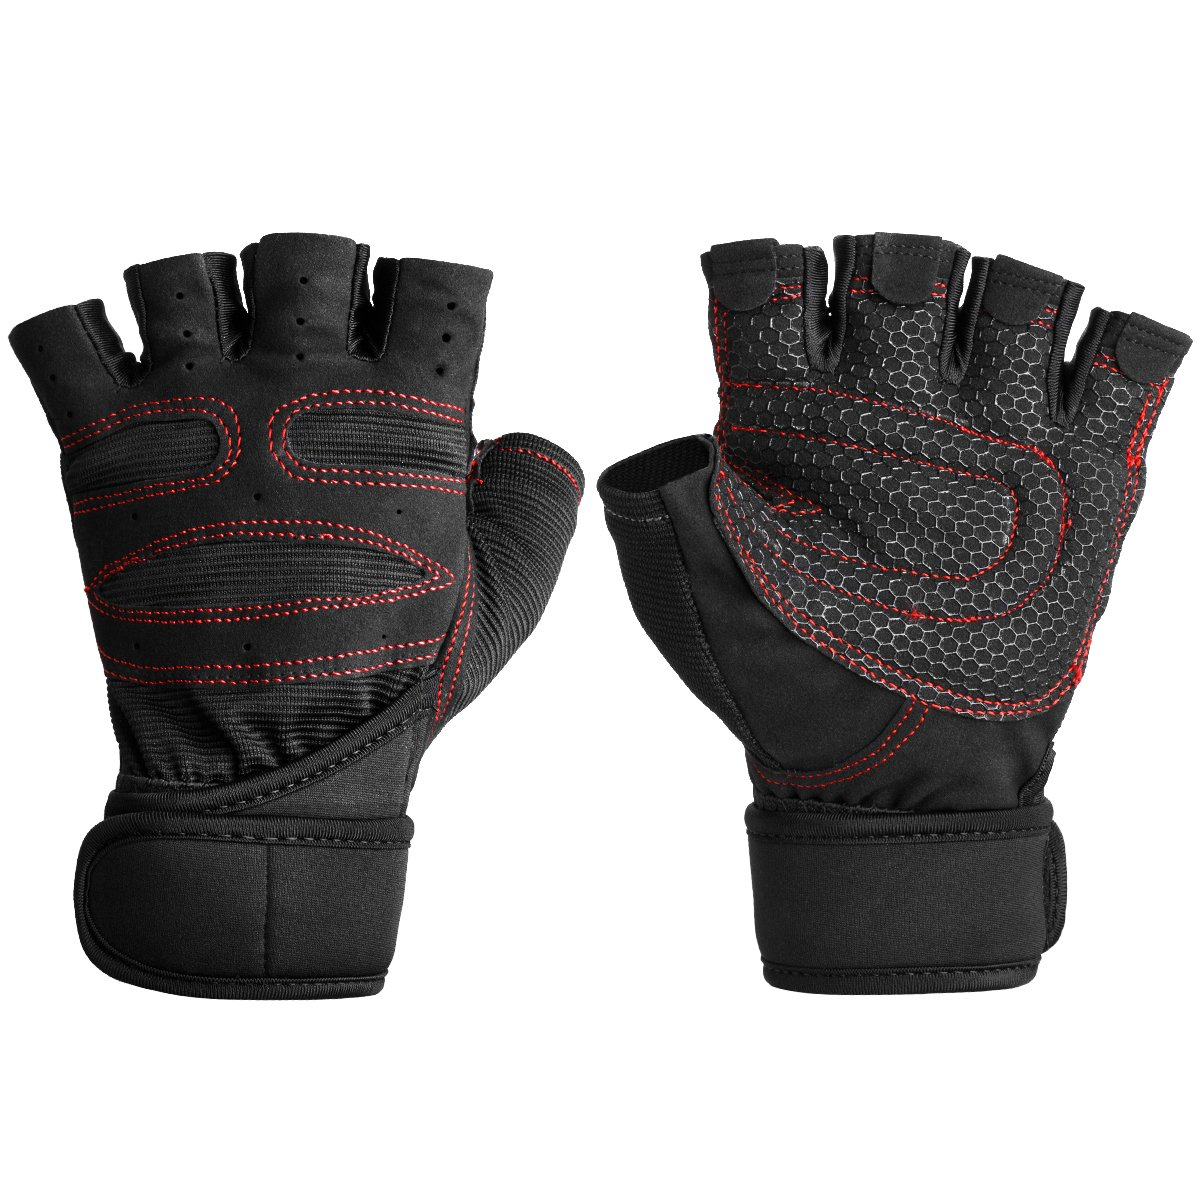 workout glove